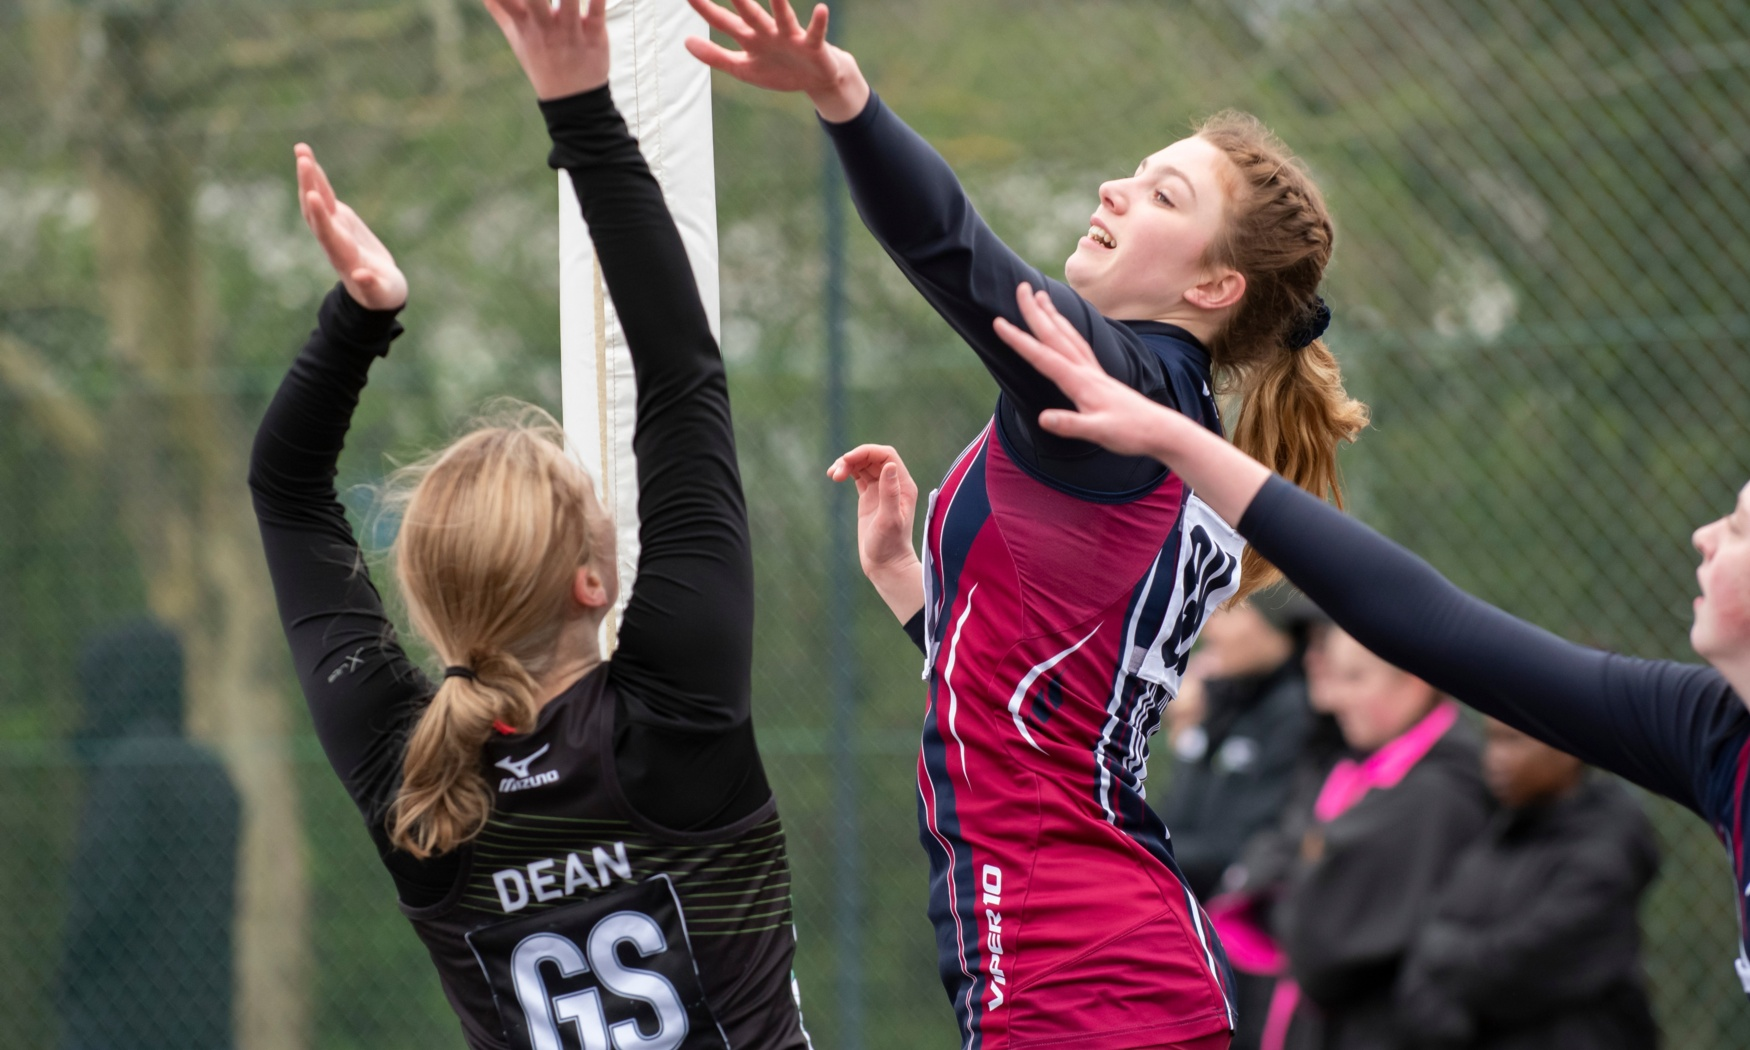 Netball Nationsal_March2019_022.jpg